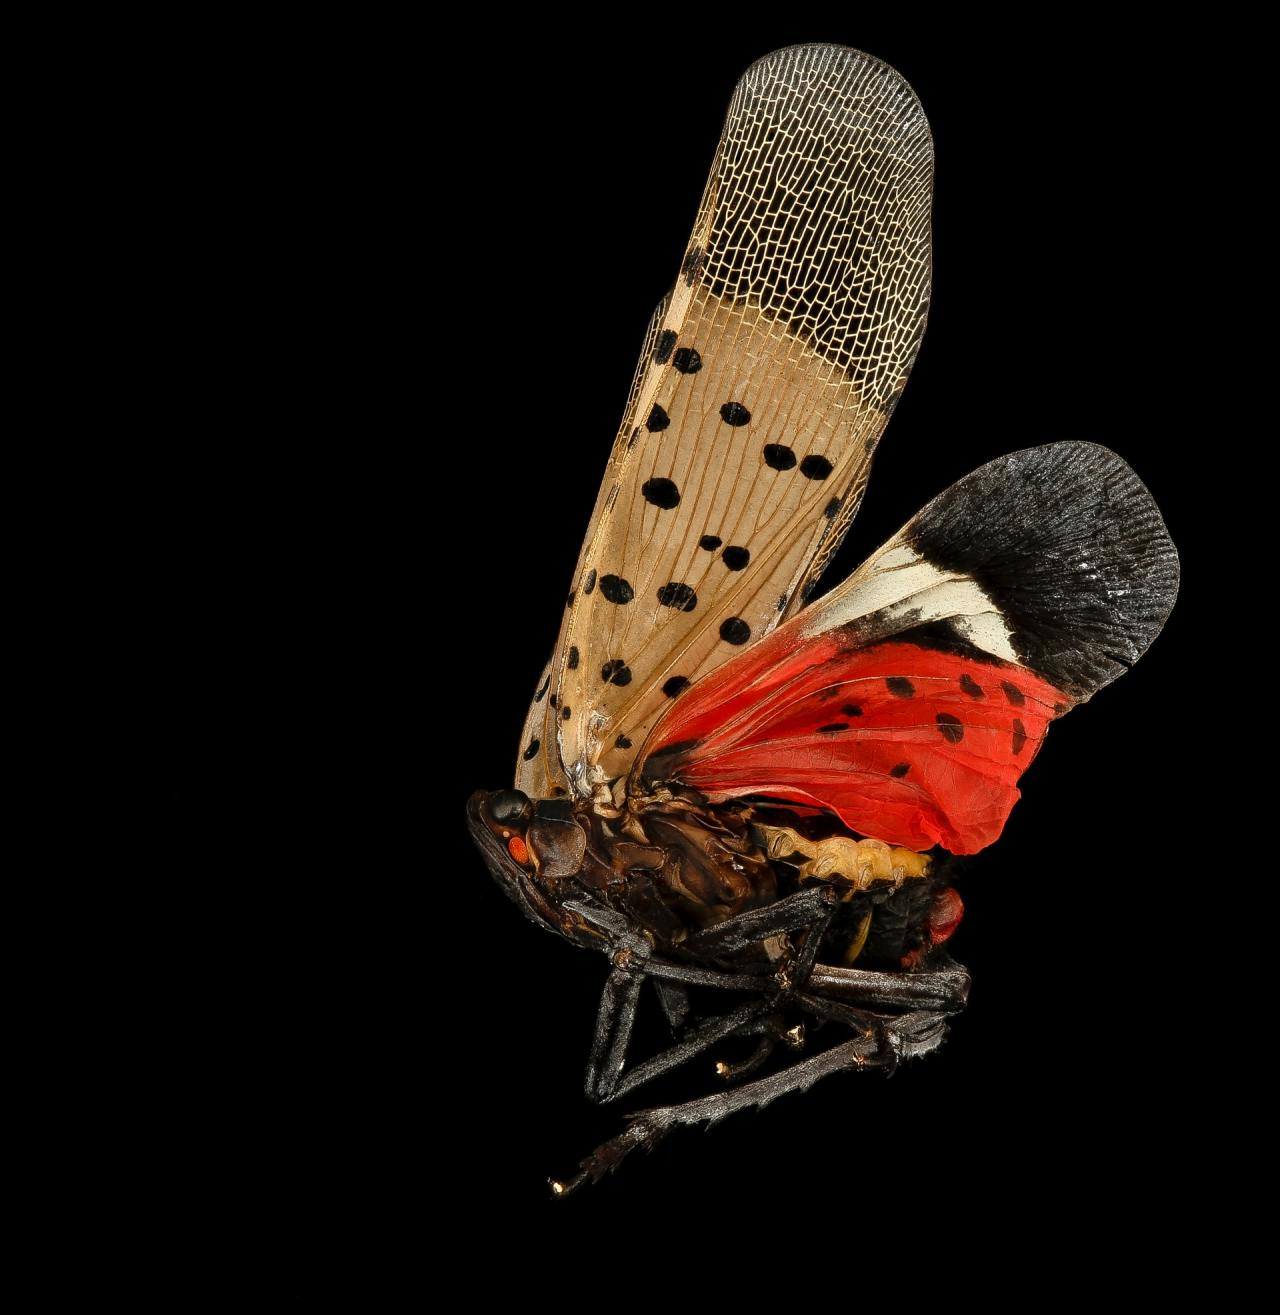 Spotted Lanternfly (Lycorma delicatula). An impressive 2 inch exotic Fulgorid type thing from China and Southeast asia, it is a bark sucker and can do tremendous damage to smooth barked woody plants.   Photographer: USGS #usgs#photographer#spotted lanternfly#lycorma delicatula#china#southeast asia#nature#insect#macro photography